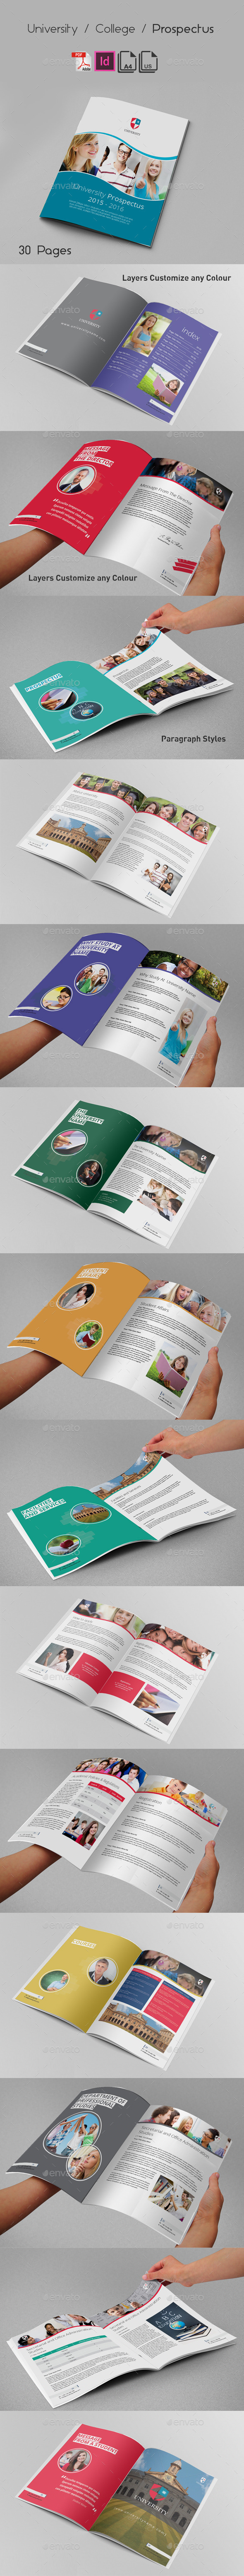 GraphicRiver University College Prospectus 9661049